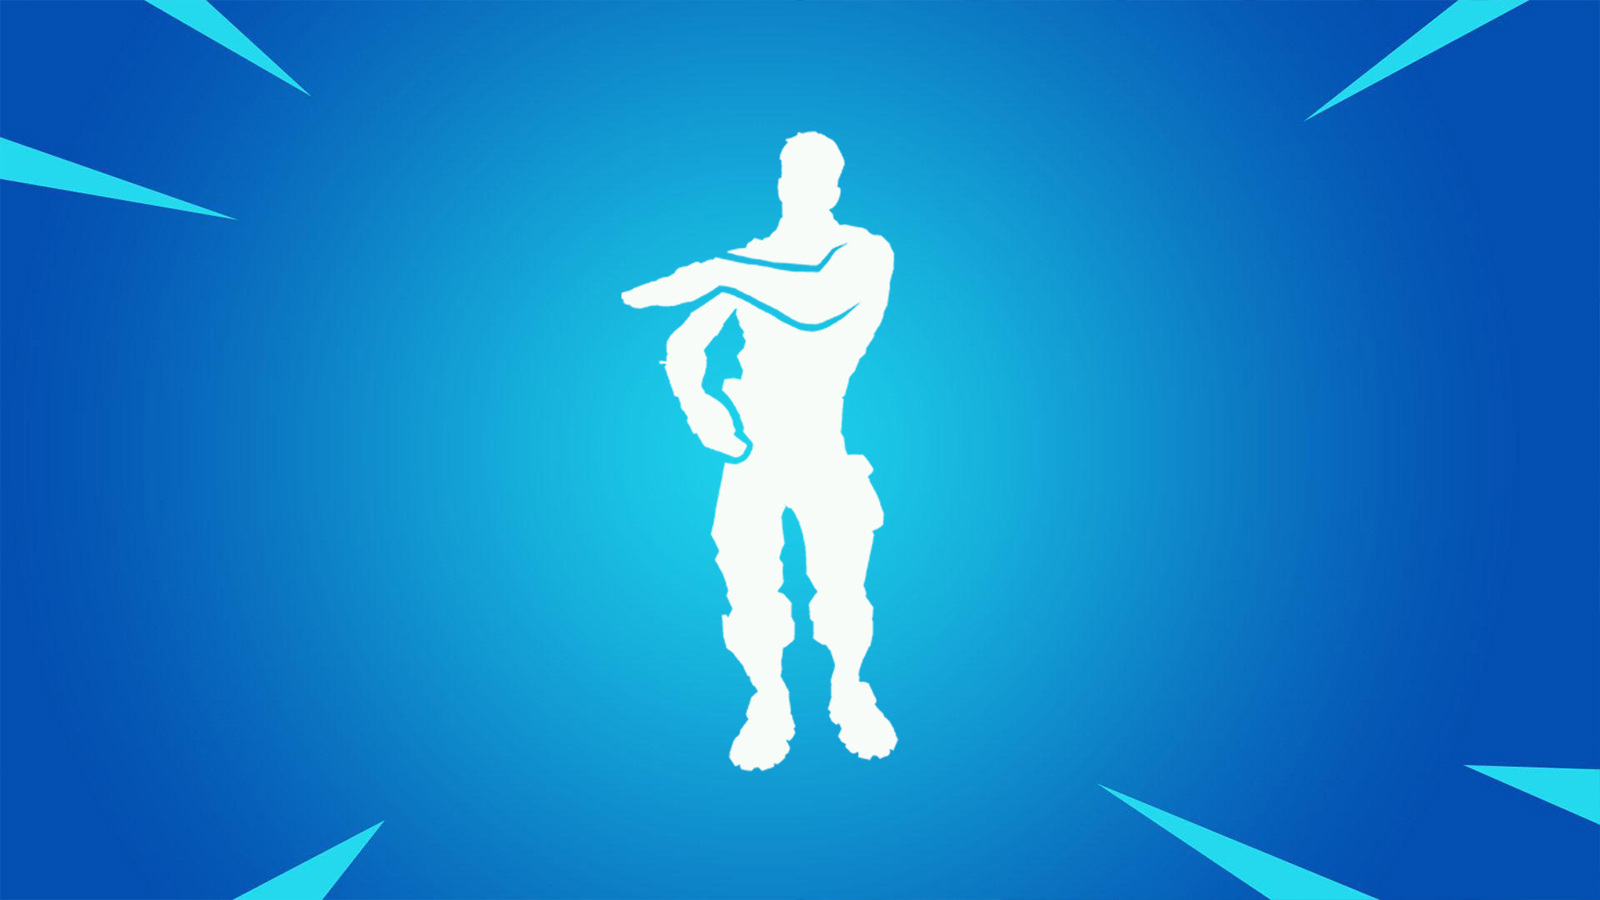 An image of a Fortnite dance move.